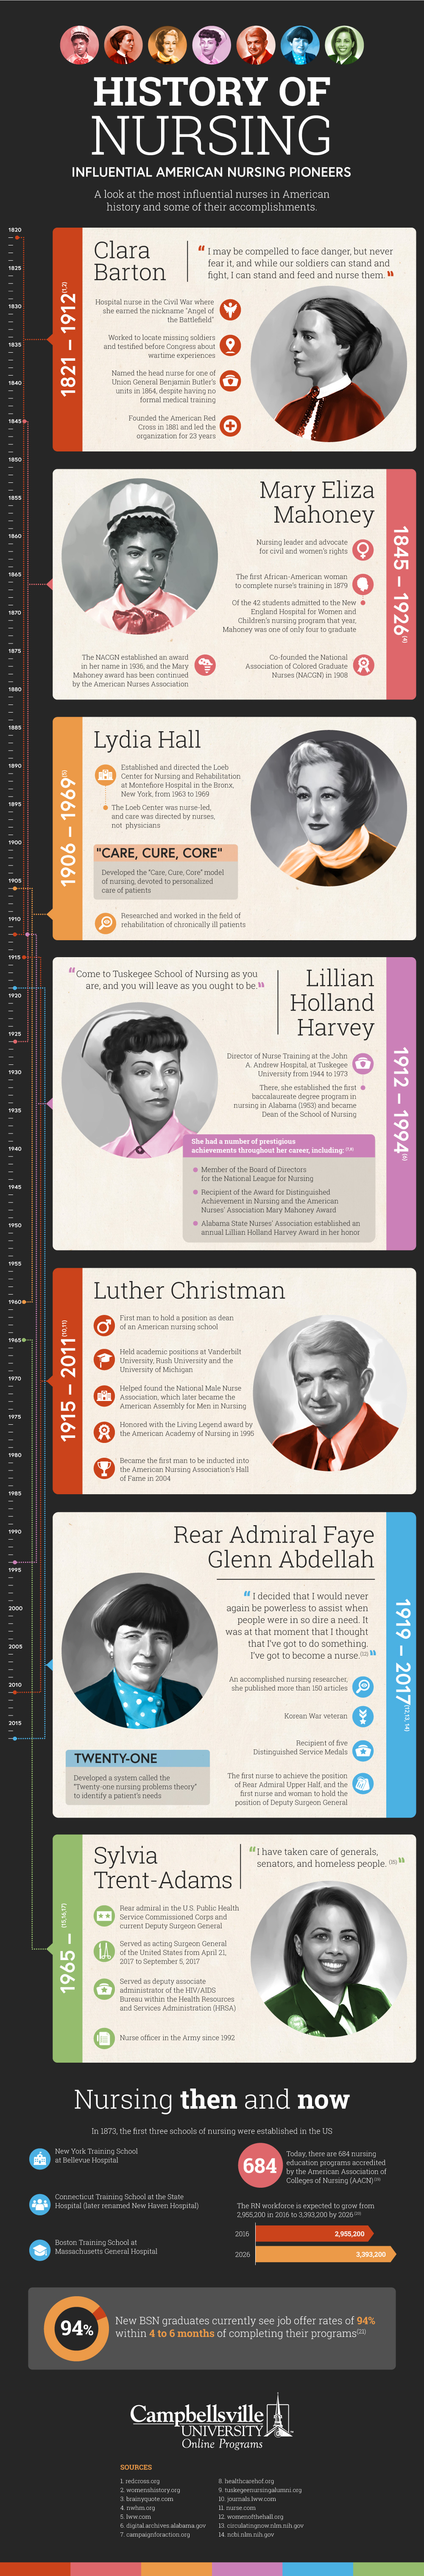 View the History of Nursing, Influential American Nursing Pioneers infographic from Aurora University Online